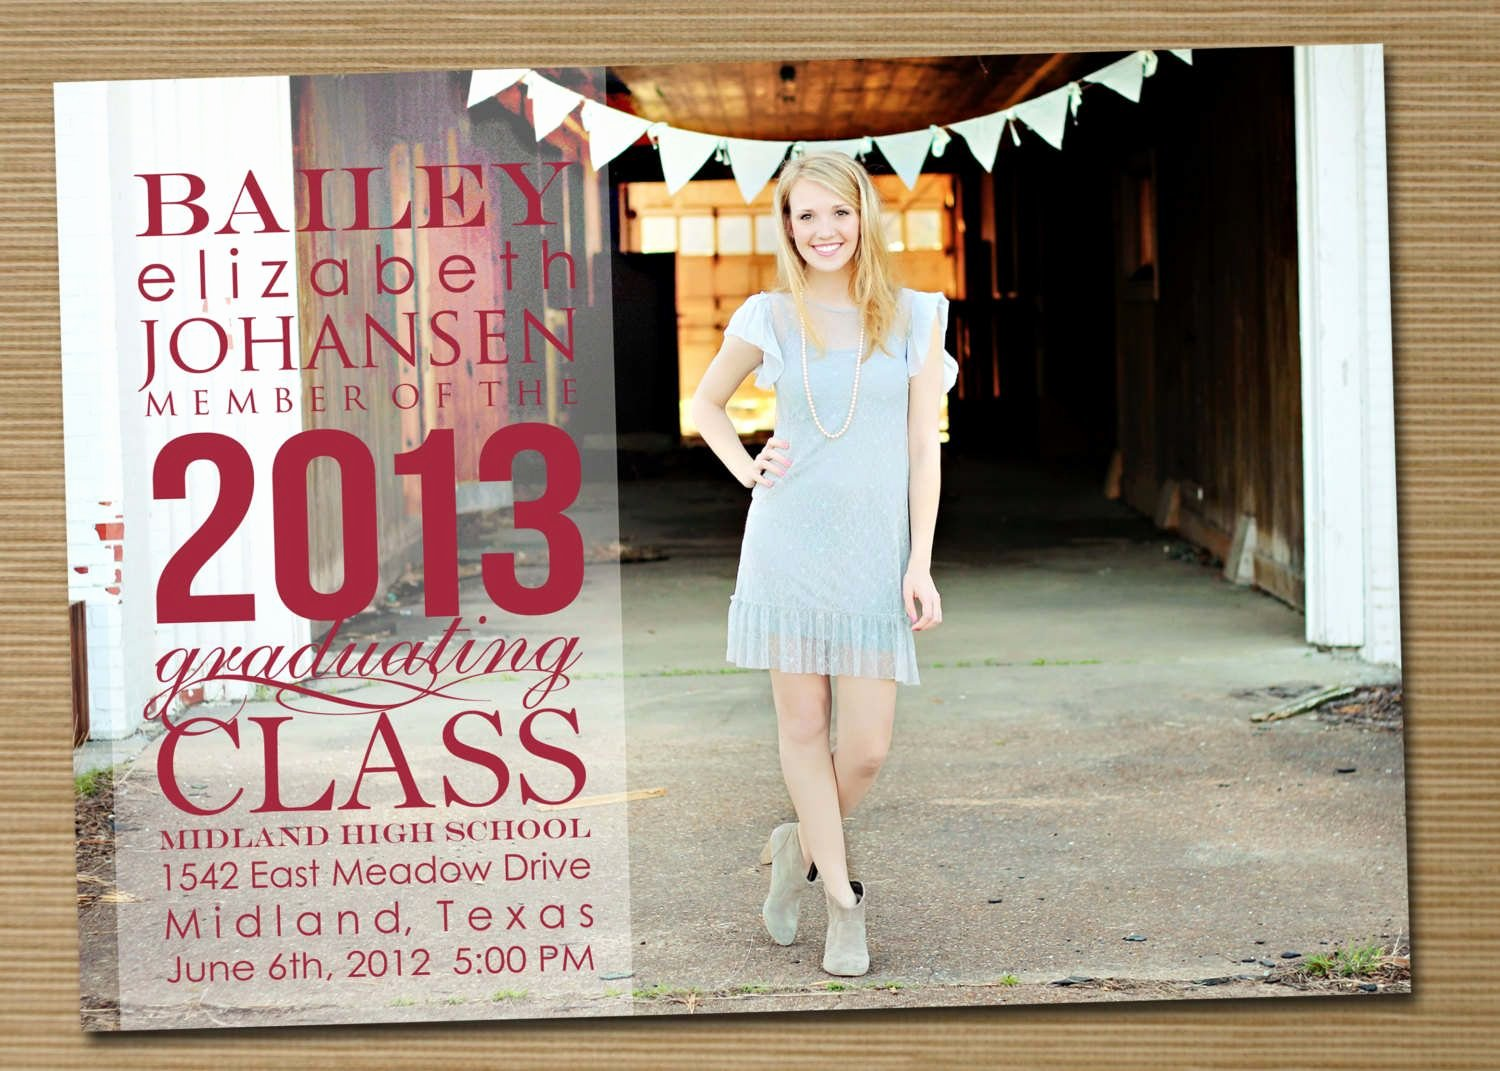 Free Downloadable Graduation Invitations Fresh Free Printable High School Graduation Invitations 2013